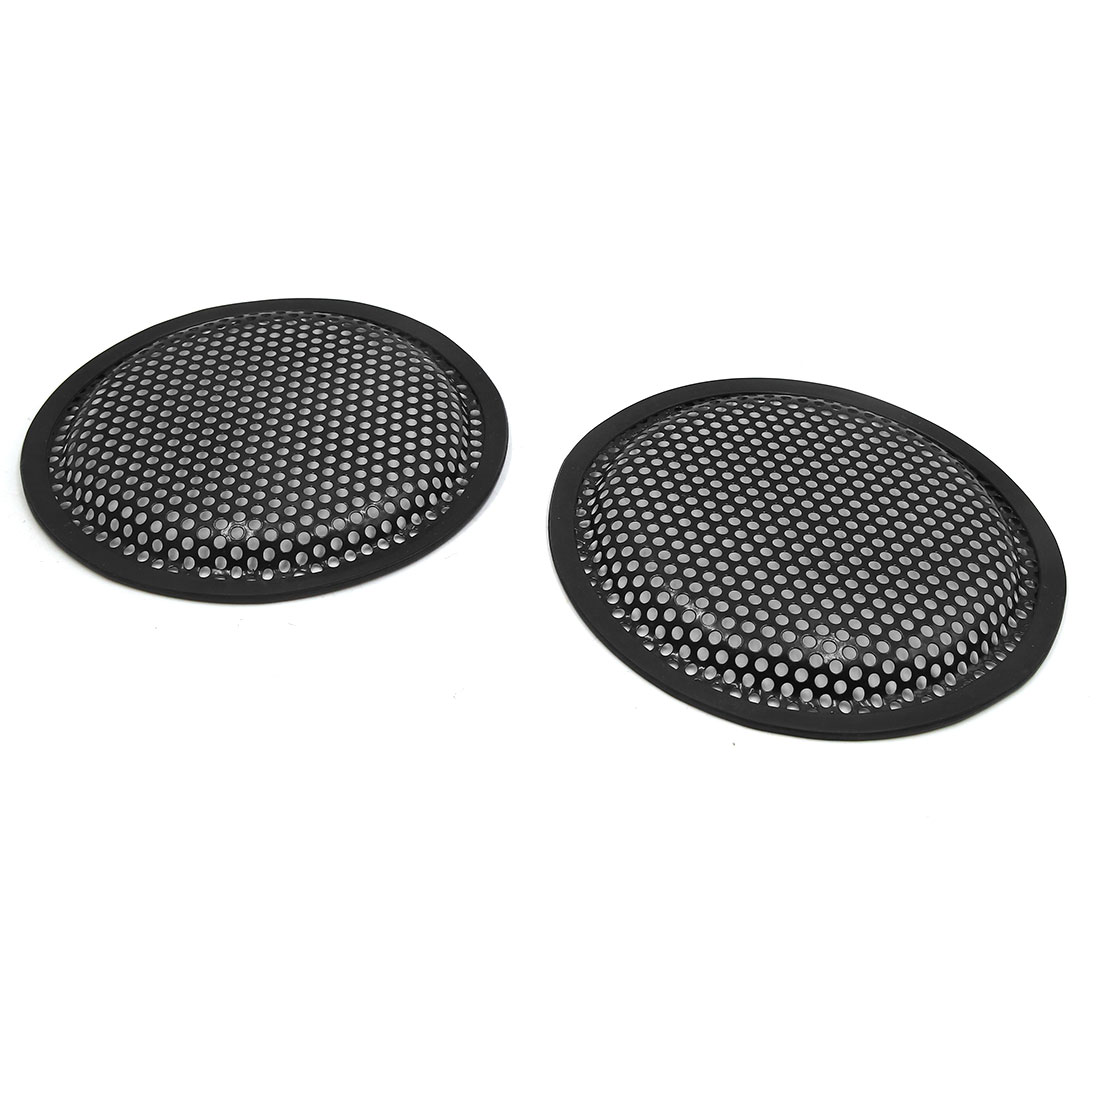 """2pcs 6.5"""" Car Stereo Metal Mesh Speaker Subwoofer Grill Cover Guard Protector"""